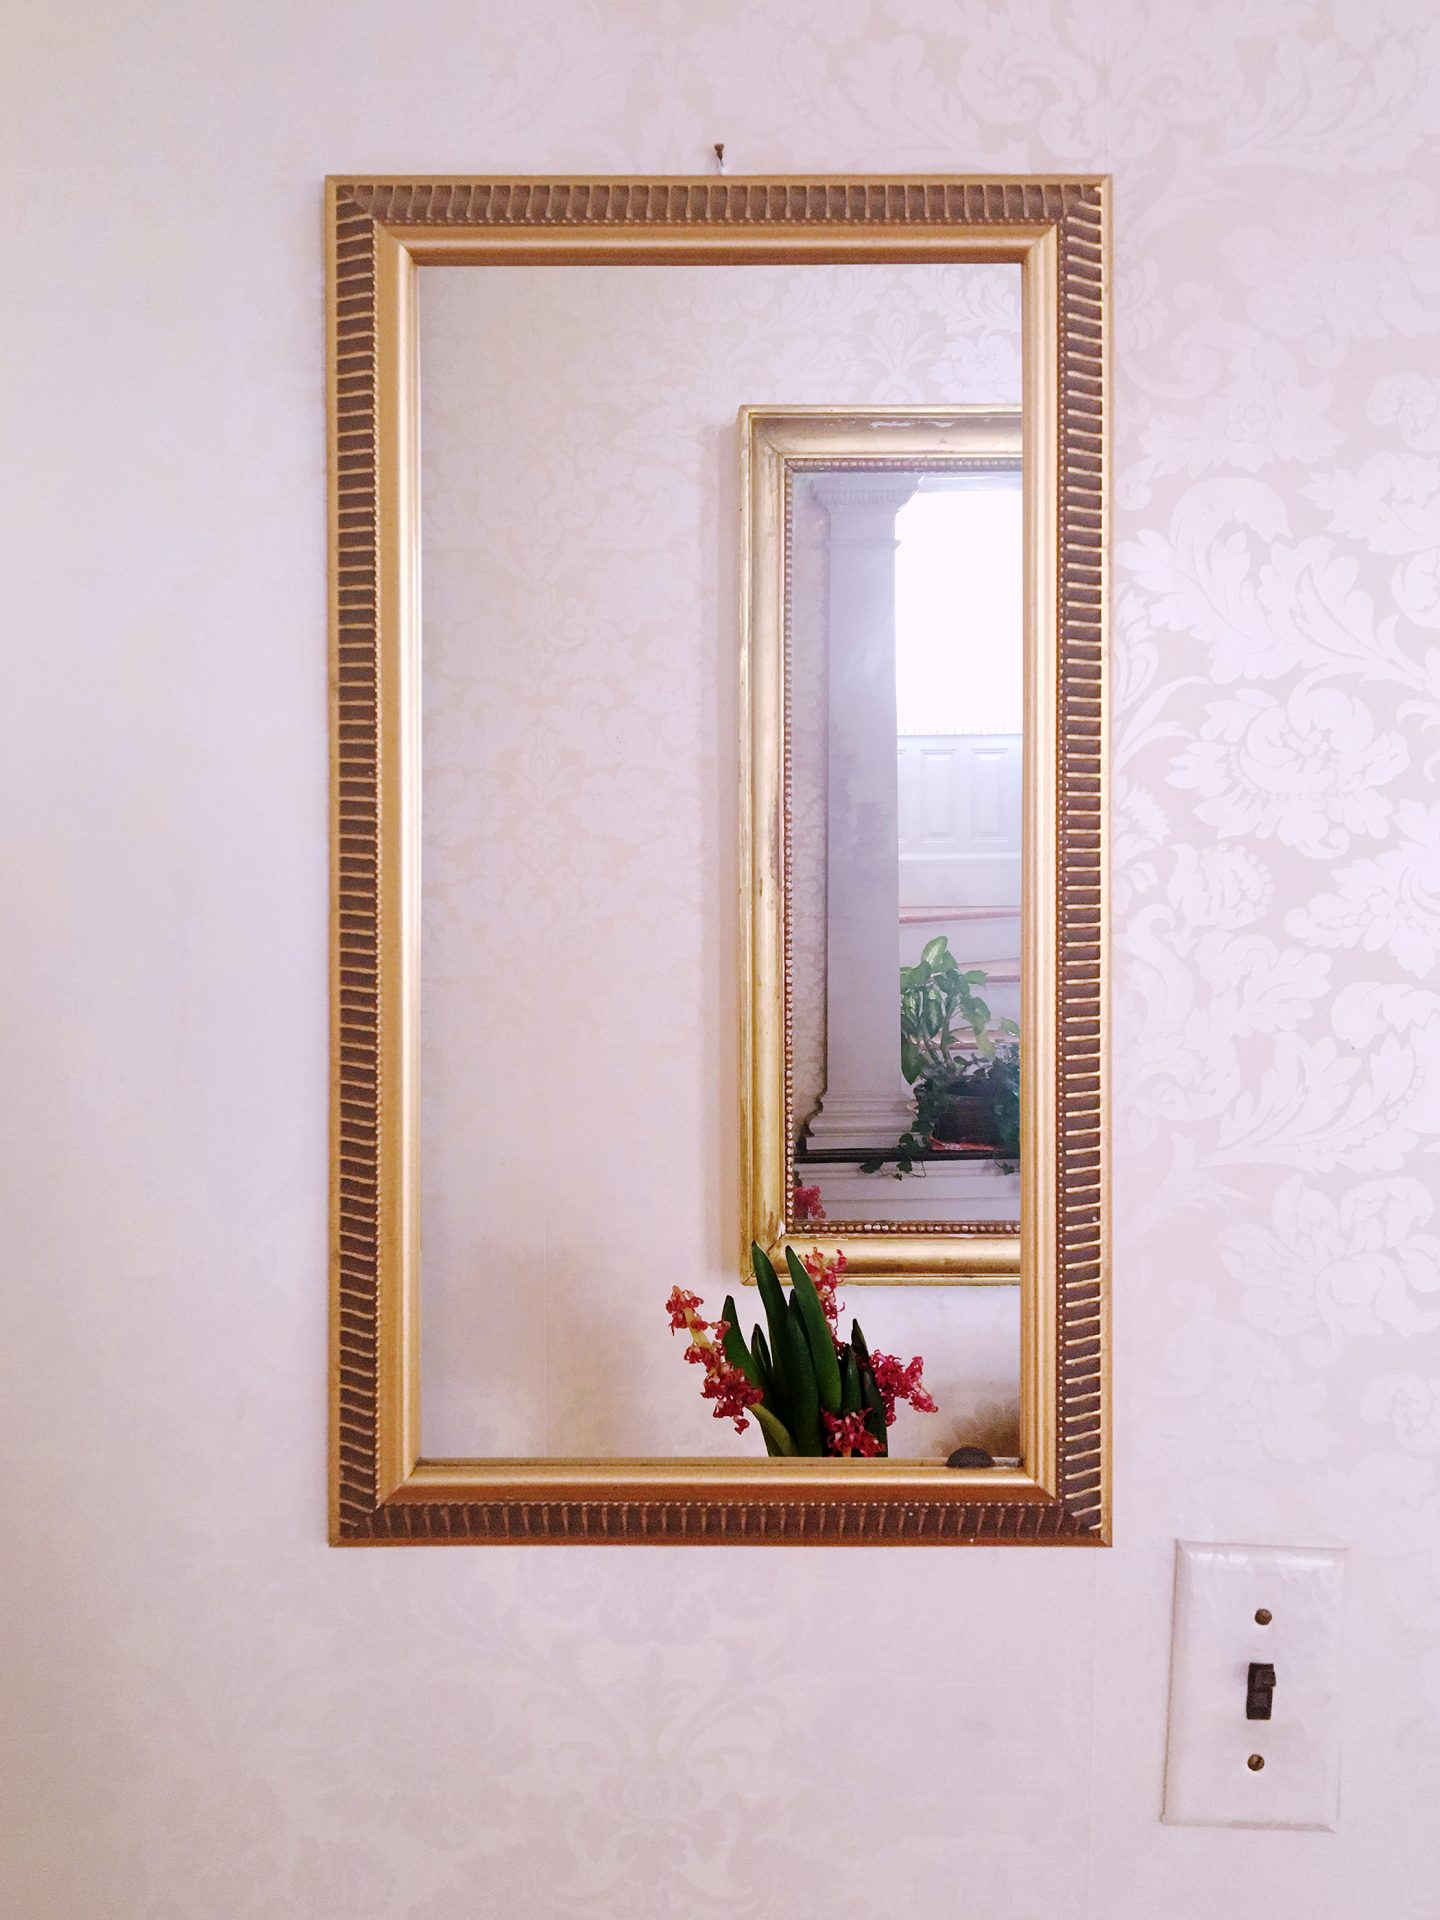 photography_leonardomagrelli_mirror04